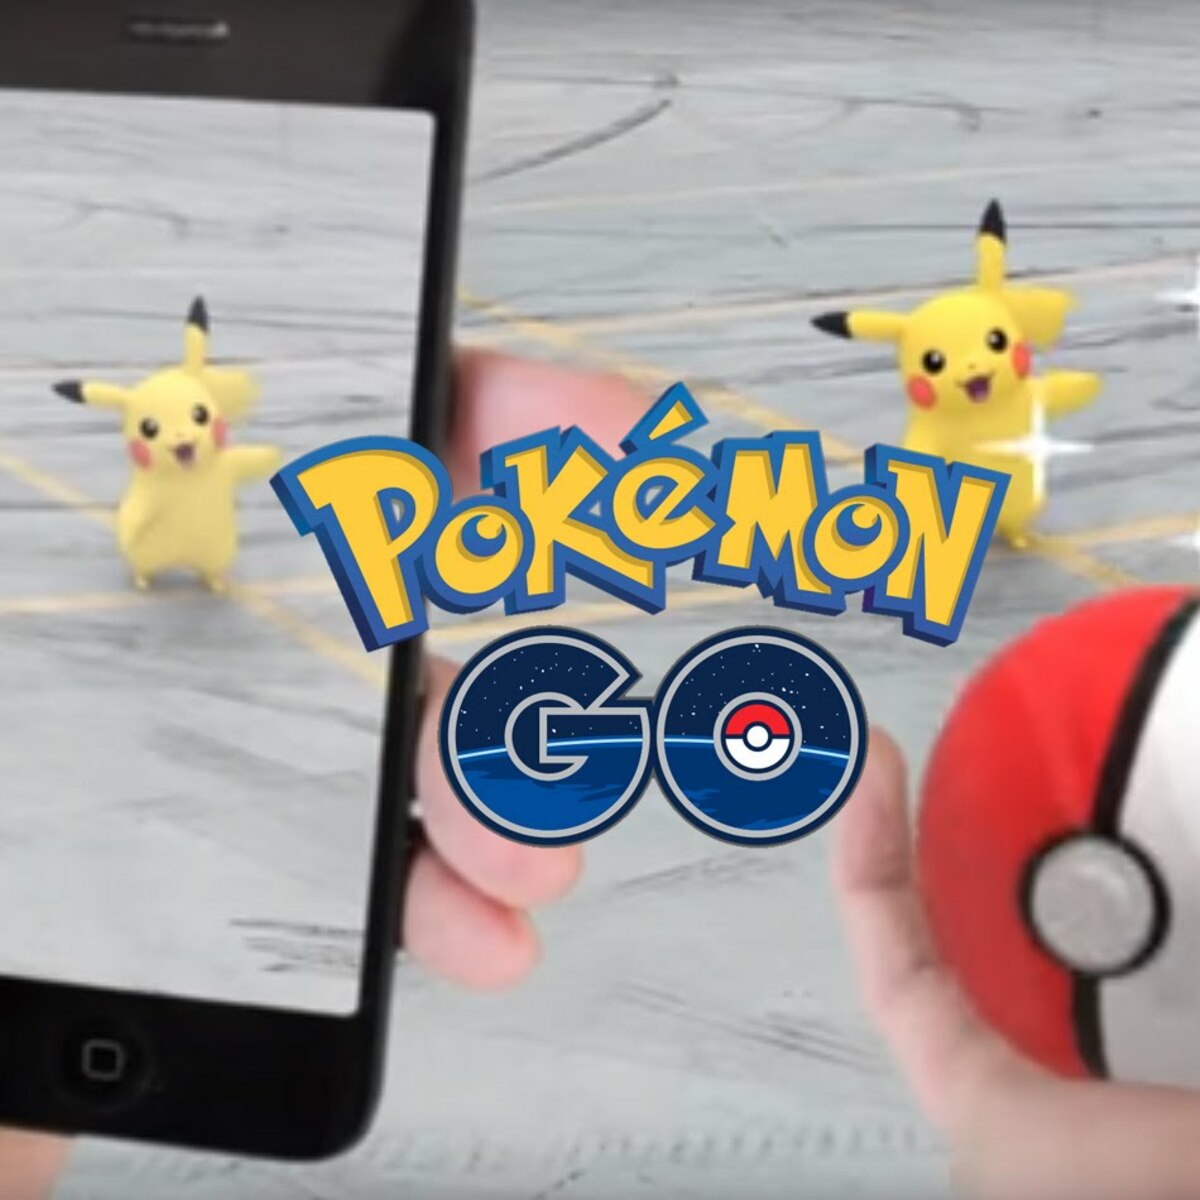 Everything you need to know about Pokemon Go - tips on downloading the app,  gyms, teams and more